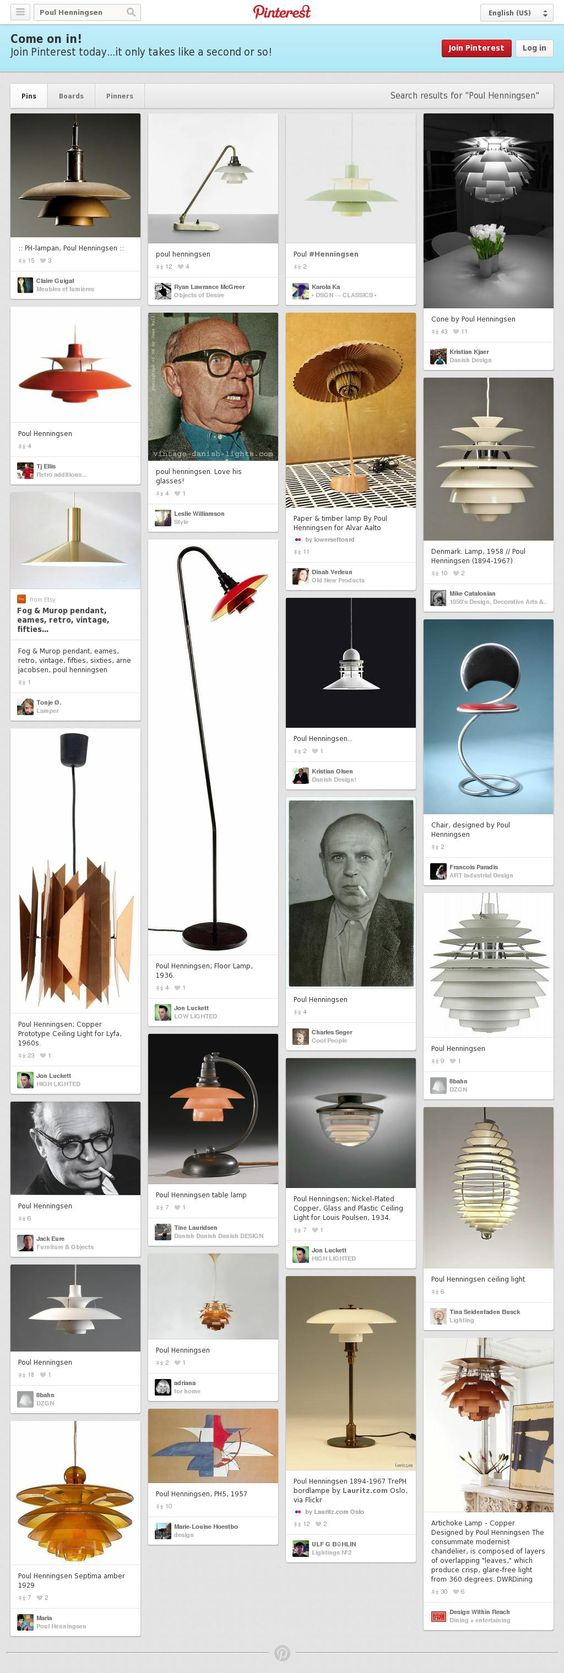 The website 'http://www.pinterest.com/search/pins/?q=Poul%20Henningsen' courtesy of @Pinstamatic (http://pinstamatic.com)